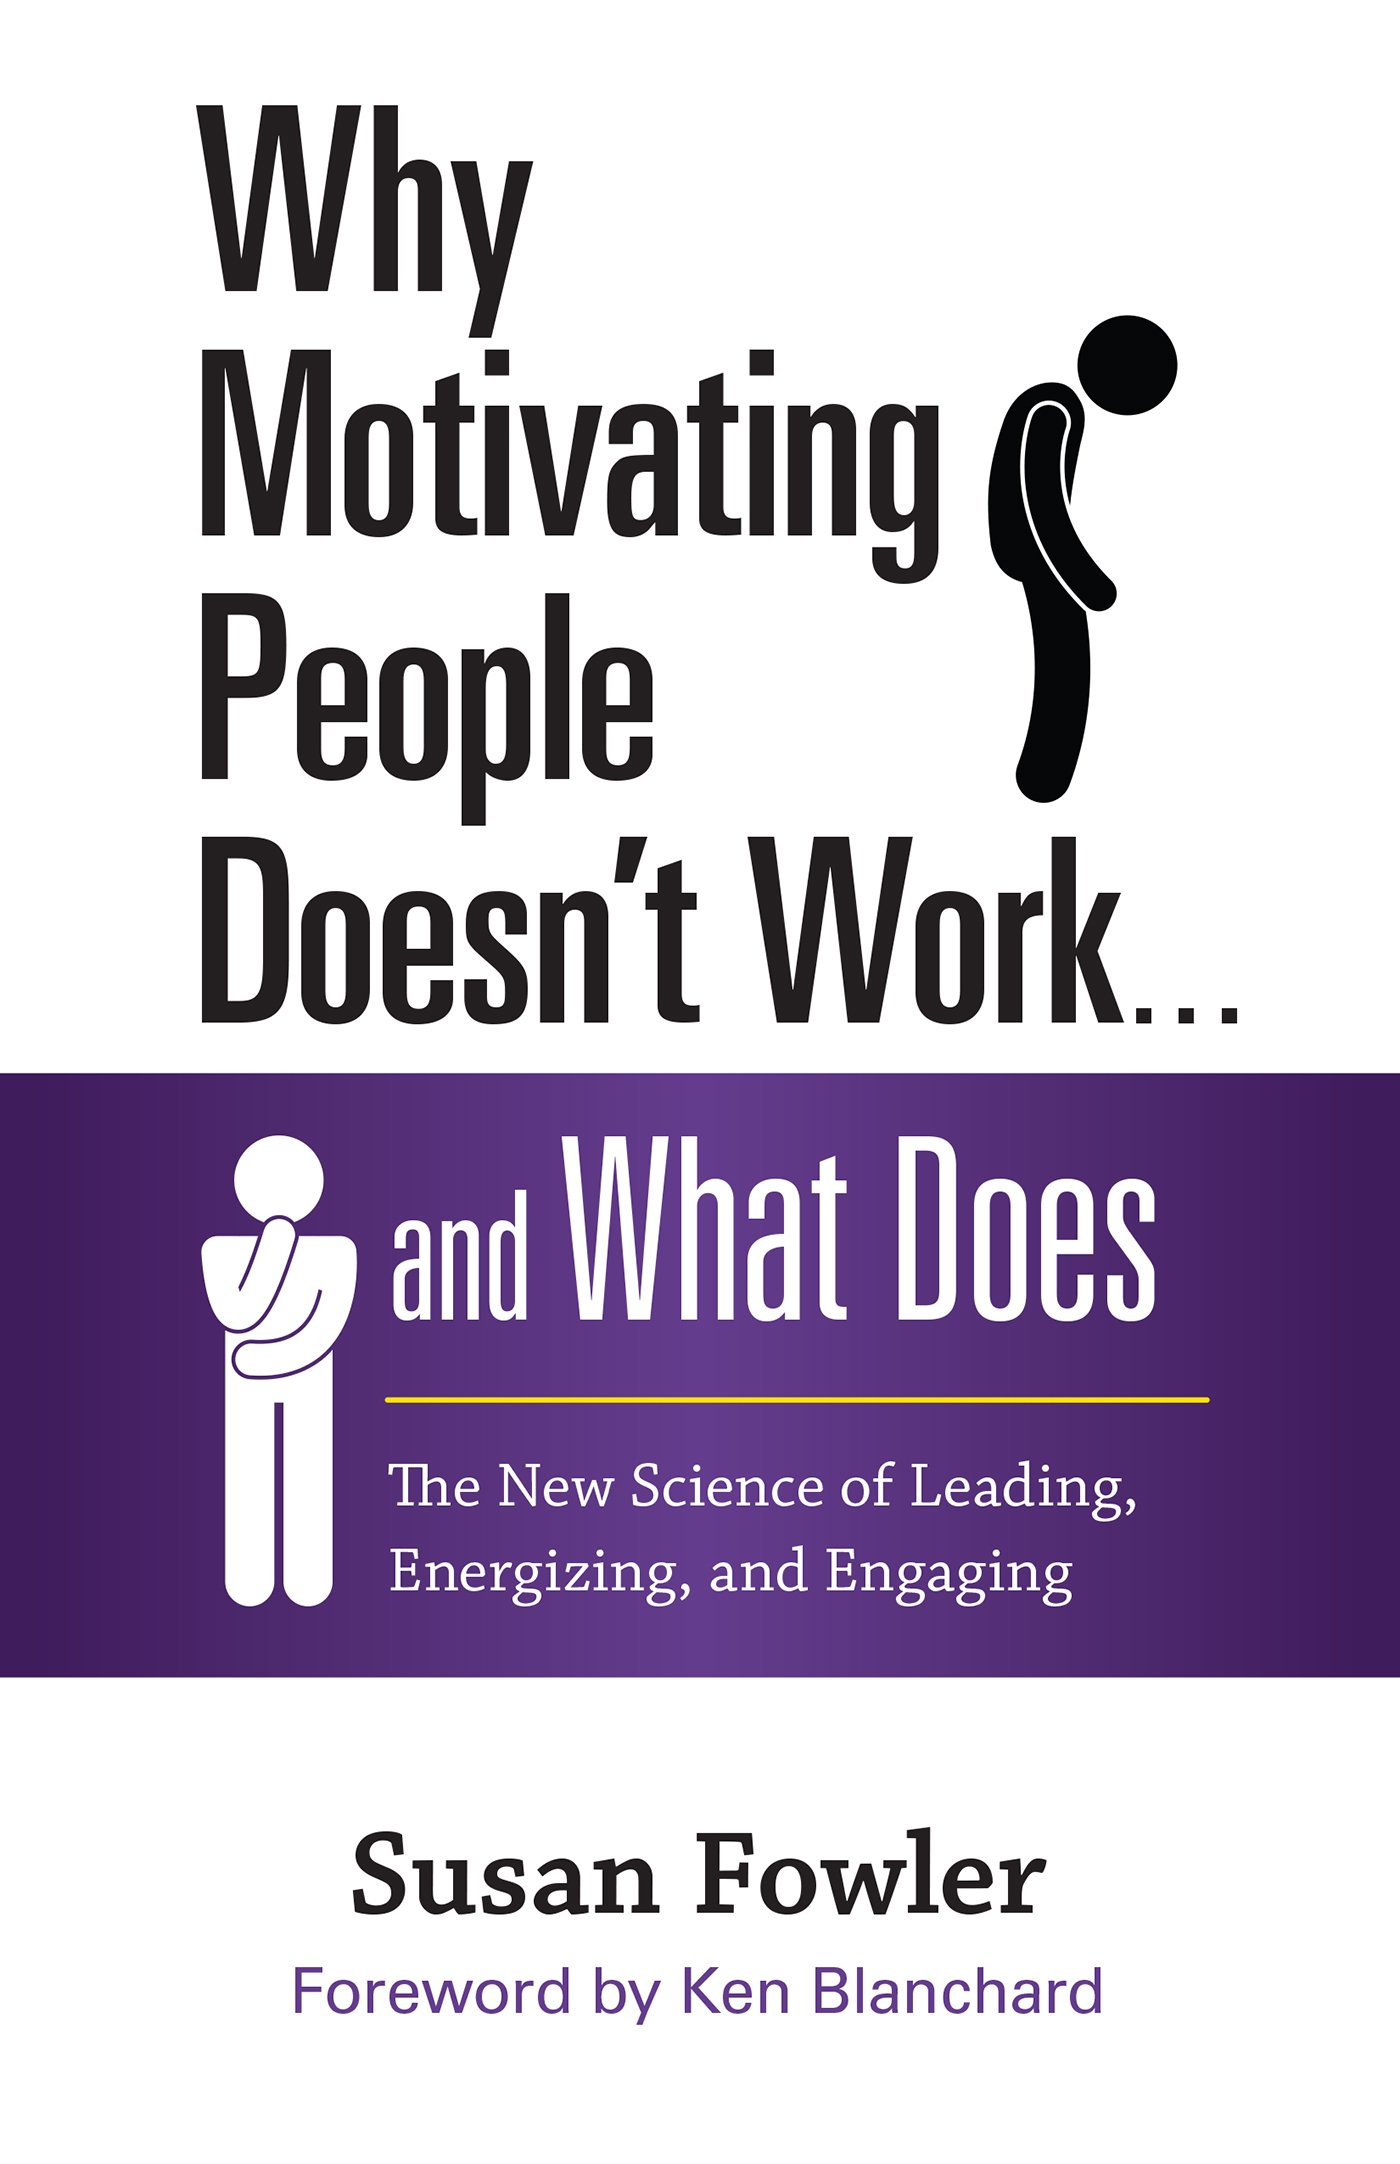 com why motivating people doesn t work and what does com why motivating people doesn t work and what does the new science of leading energizing and engaging 9781626561823 susan fowler